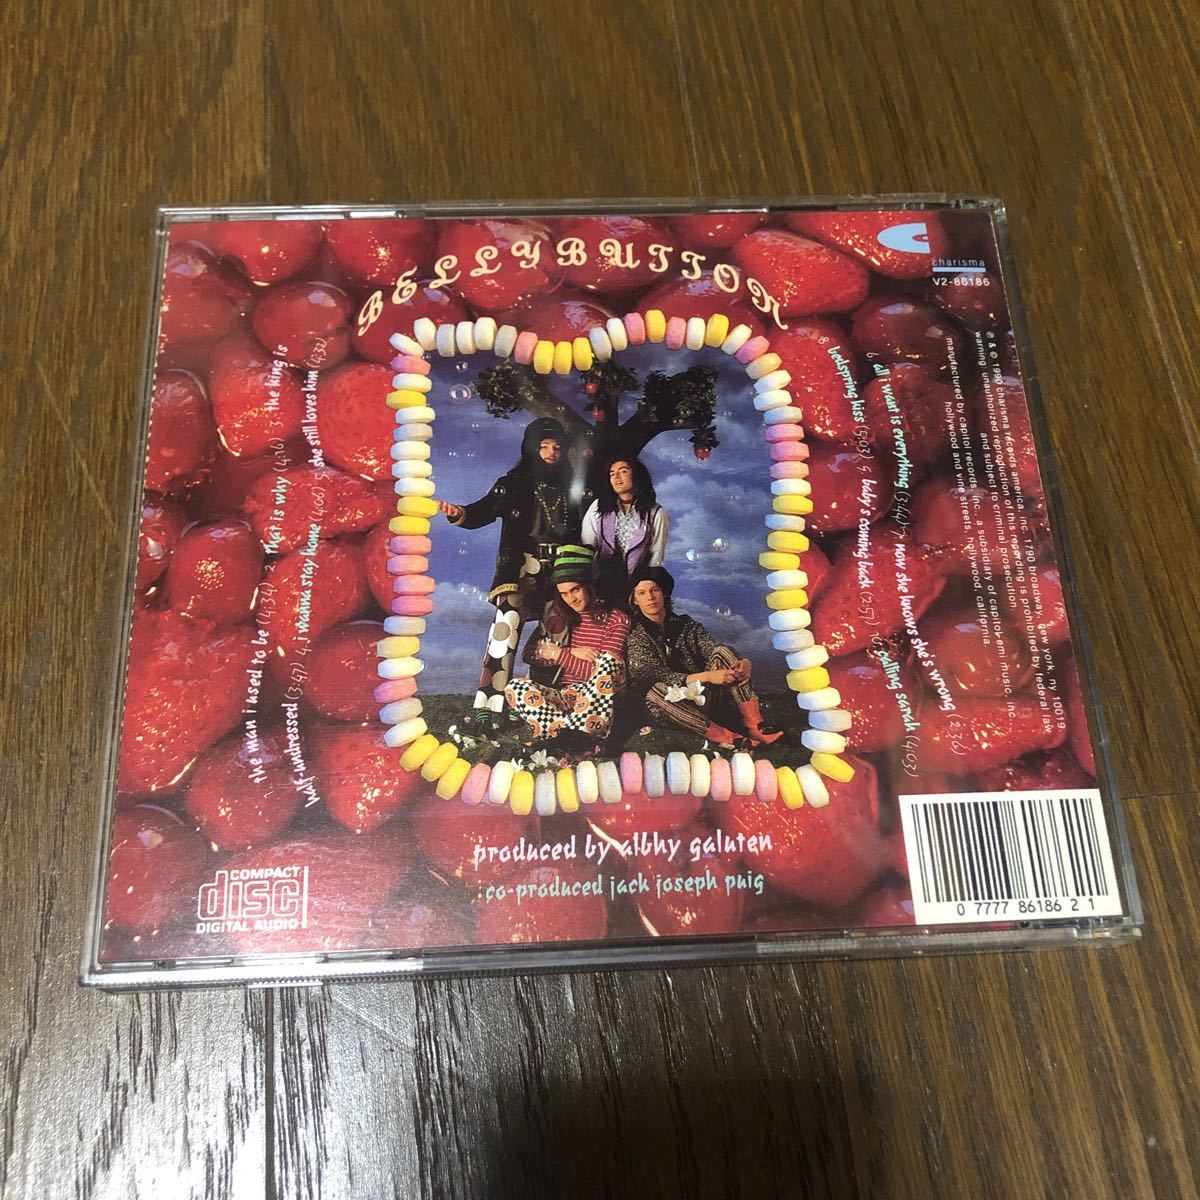 Jellyfish Bellybutton USA盤CD